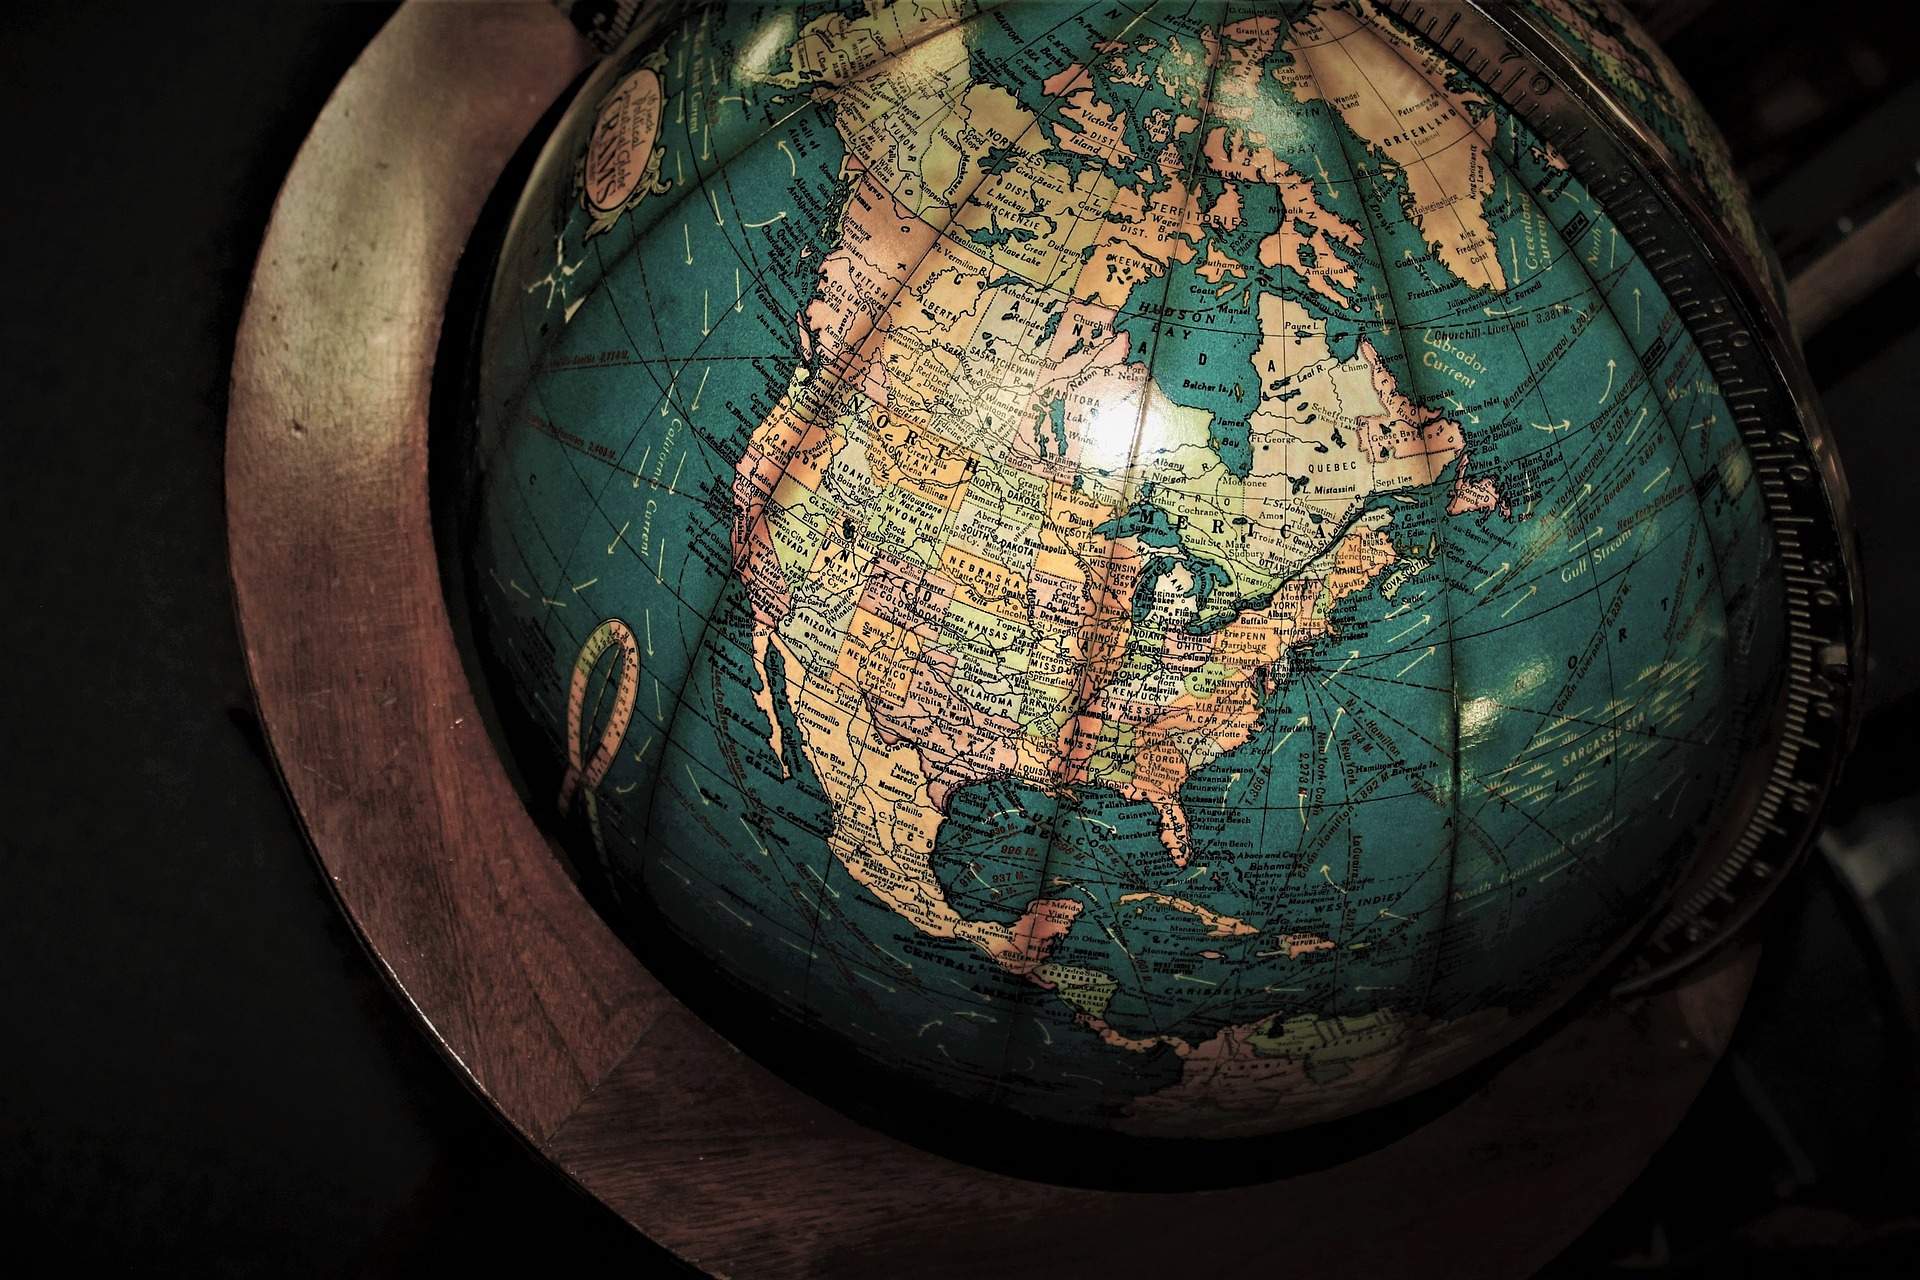 Image of a globe, zoomed in on the United States